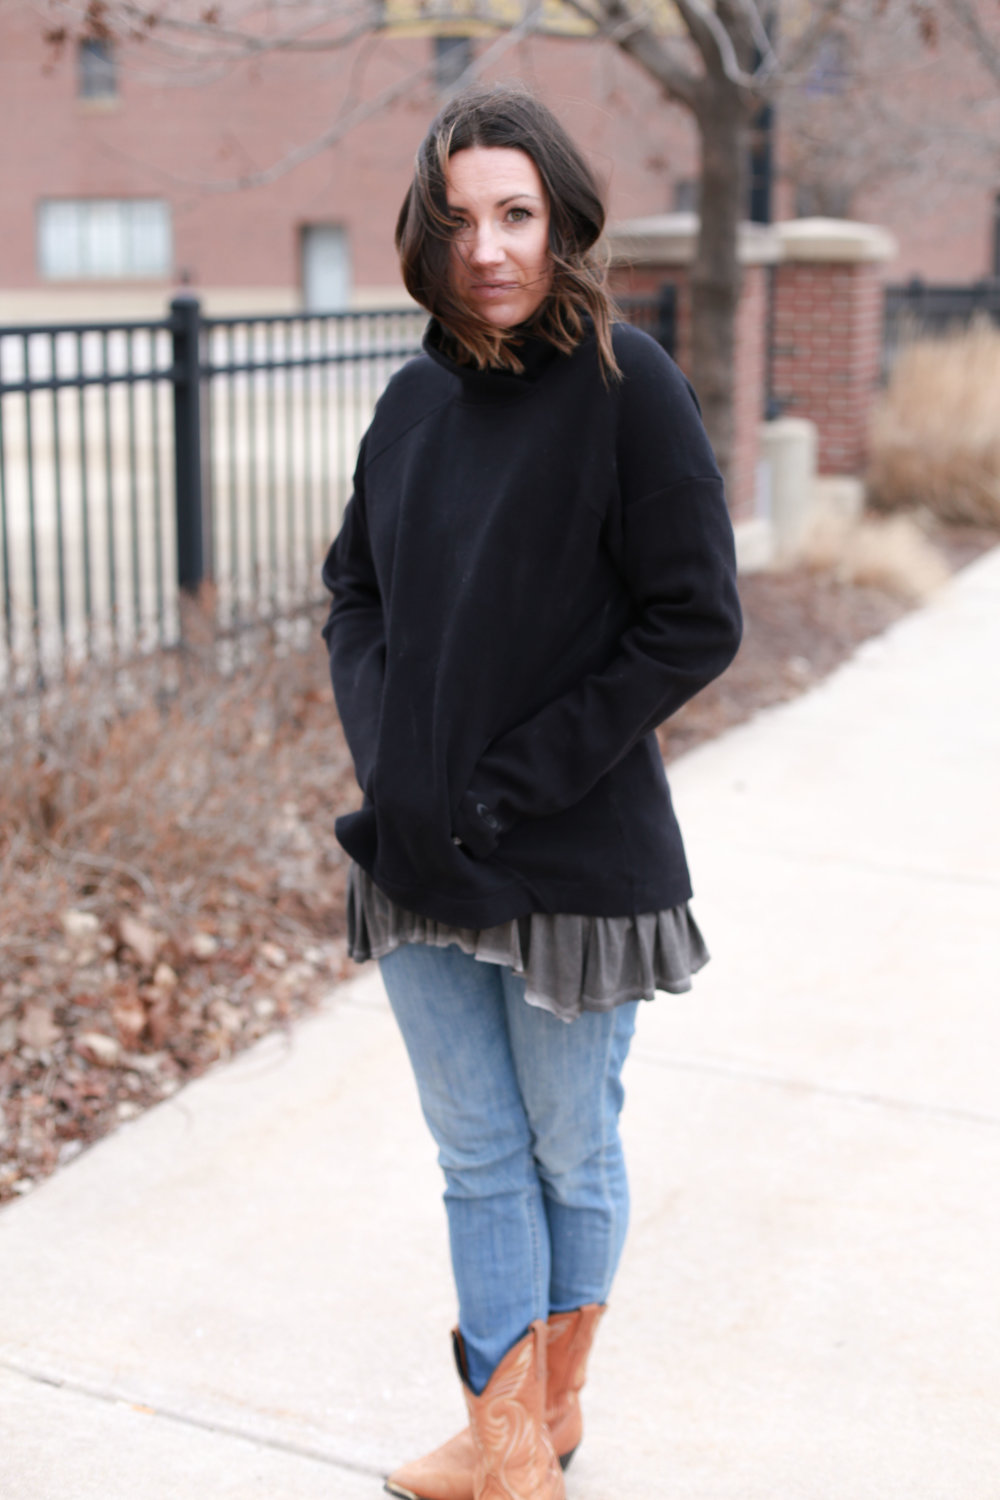 Fashion Friday: Simplify Your Look